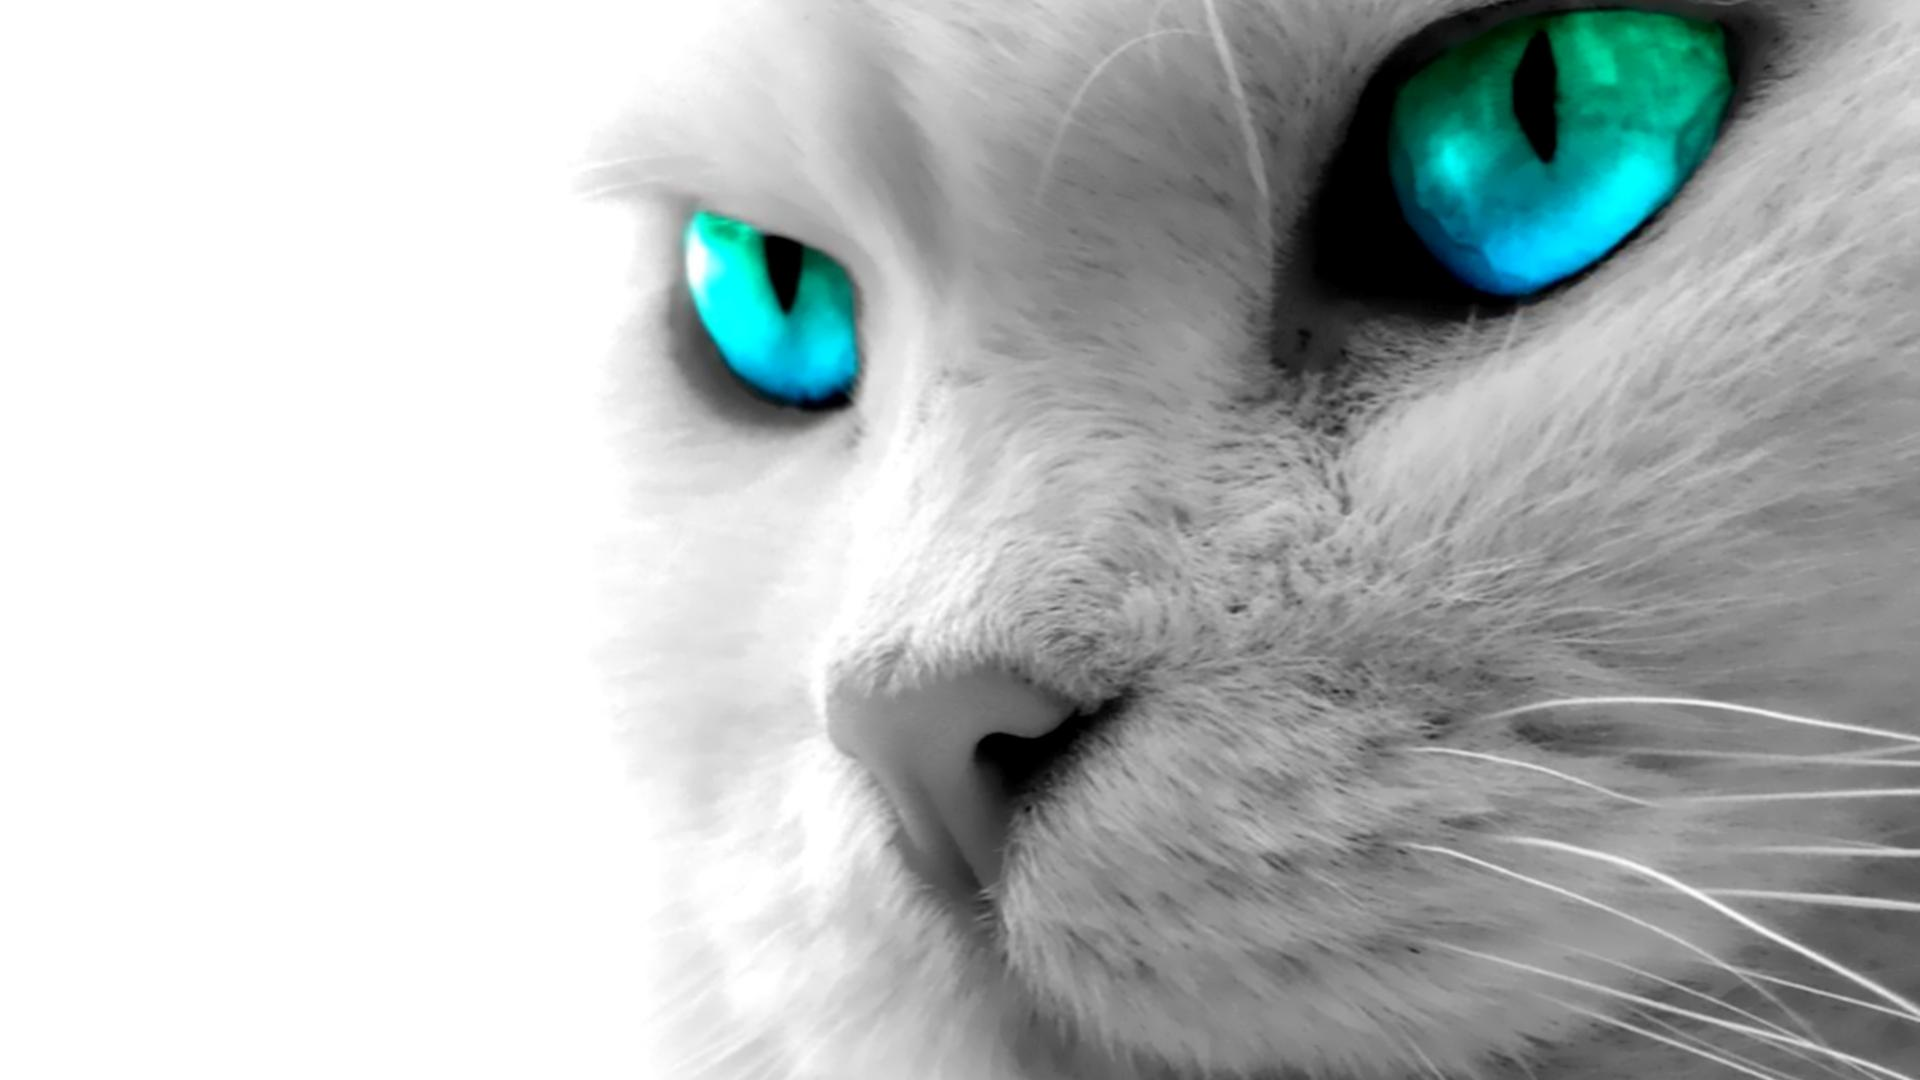 Hd wallpaper eyes - Cat Blue Eyes High Definition Wallpaper 1920x1080 Full Hd Wallpapers